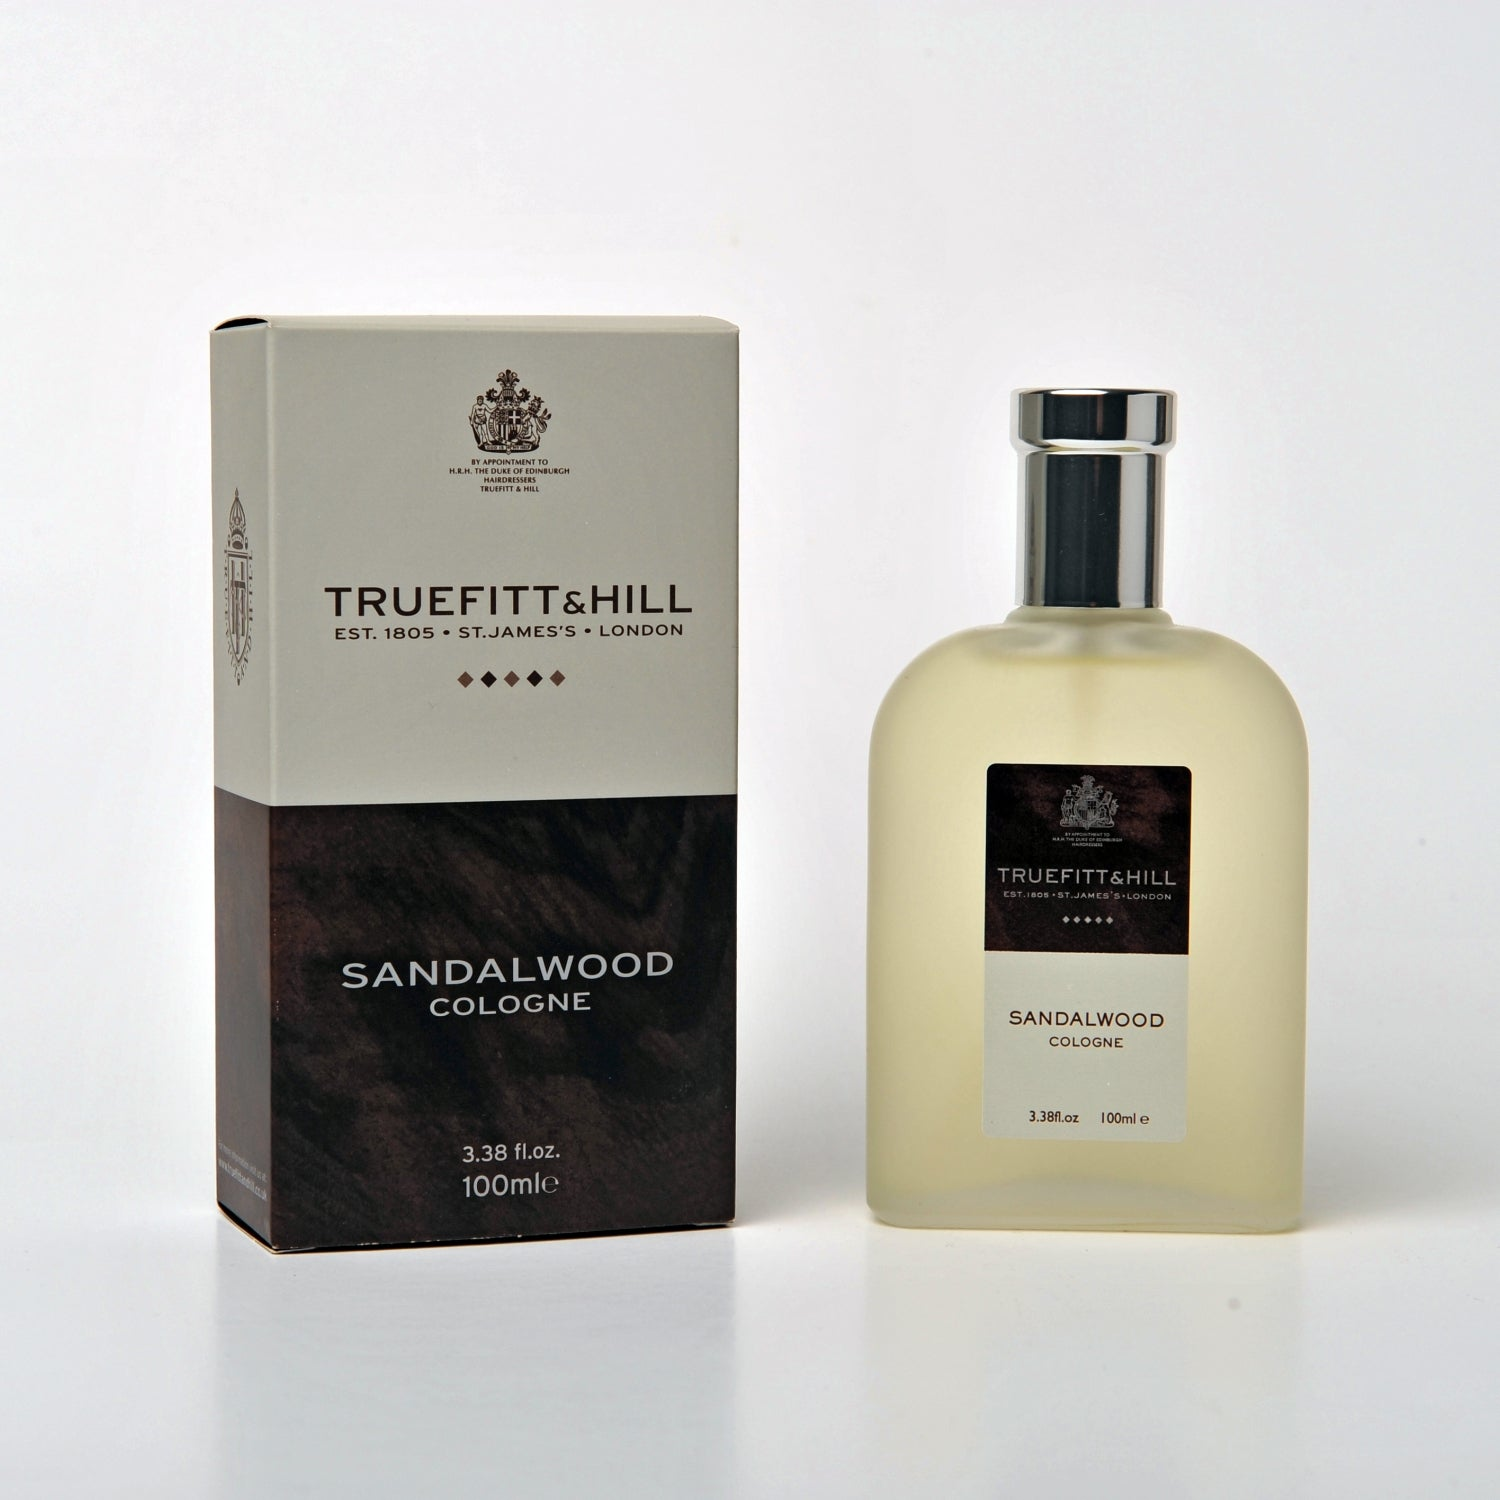 Truefitt & Hill - Sandalwood Cologne 100ml - Regent Tailoring